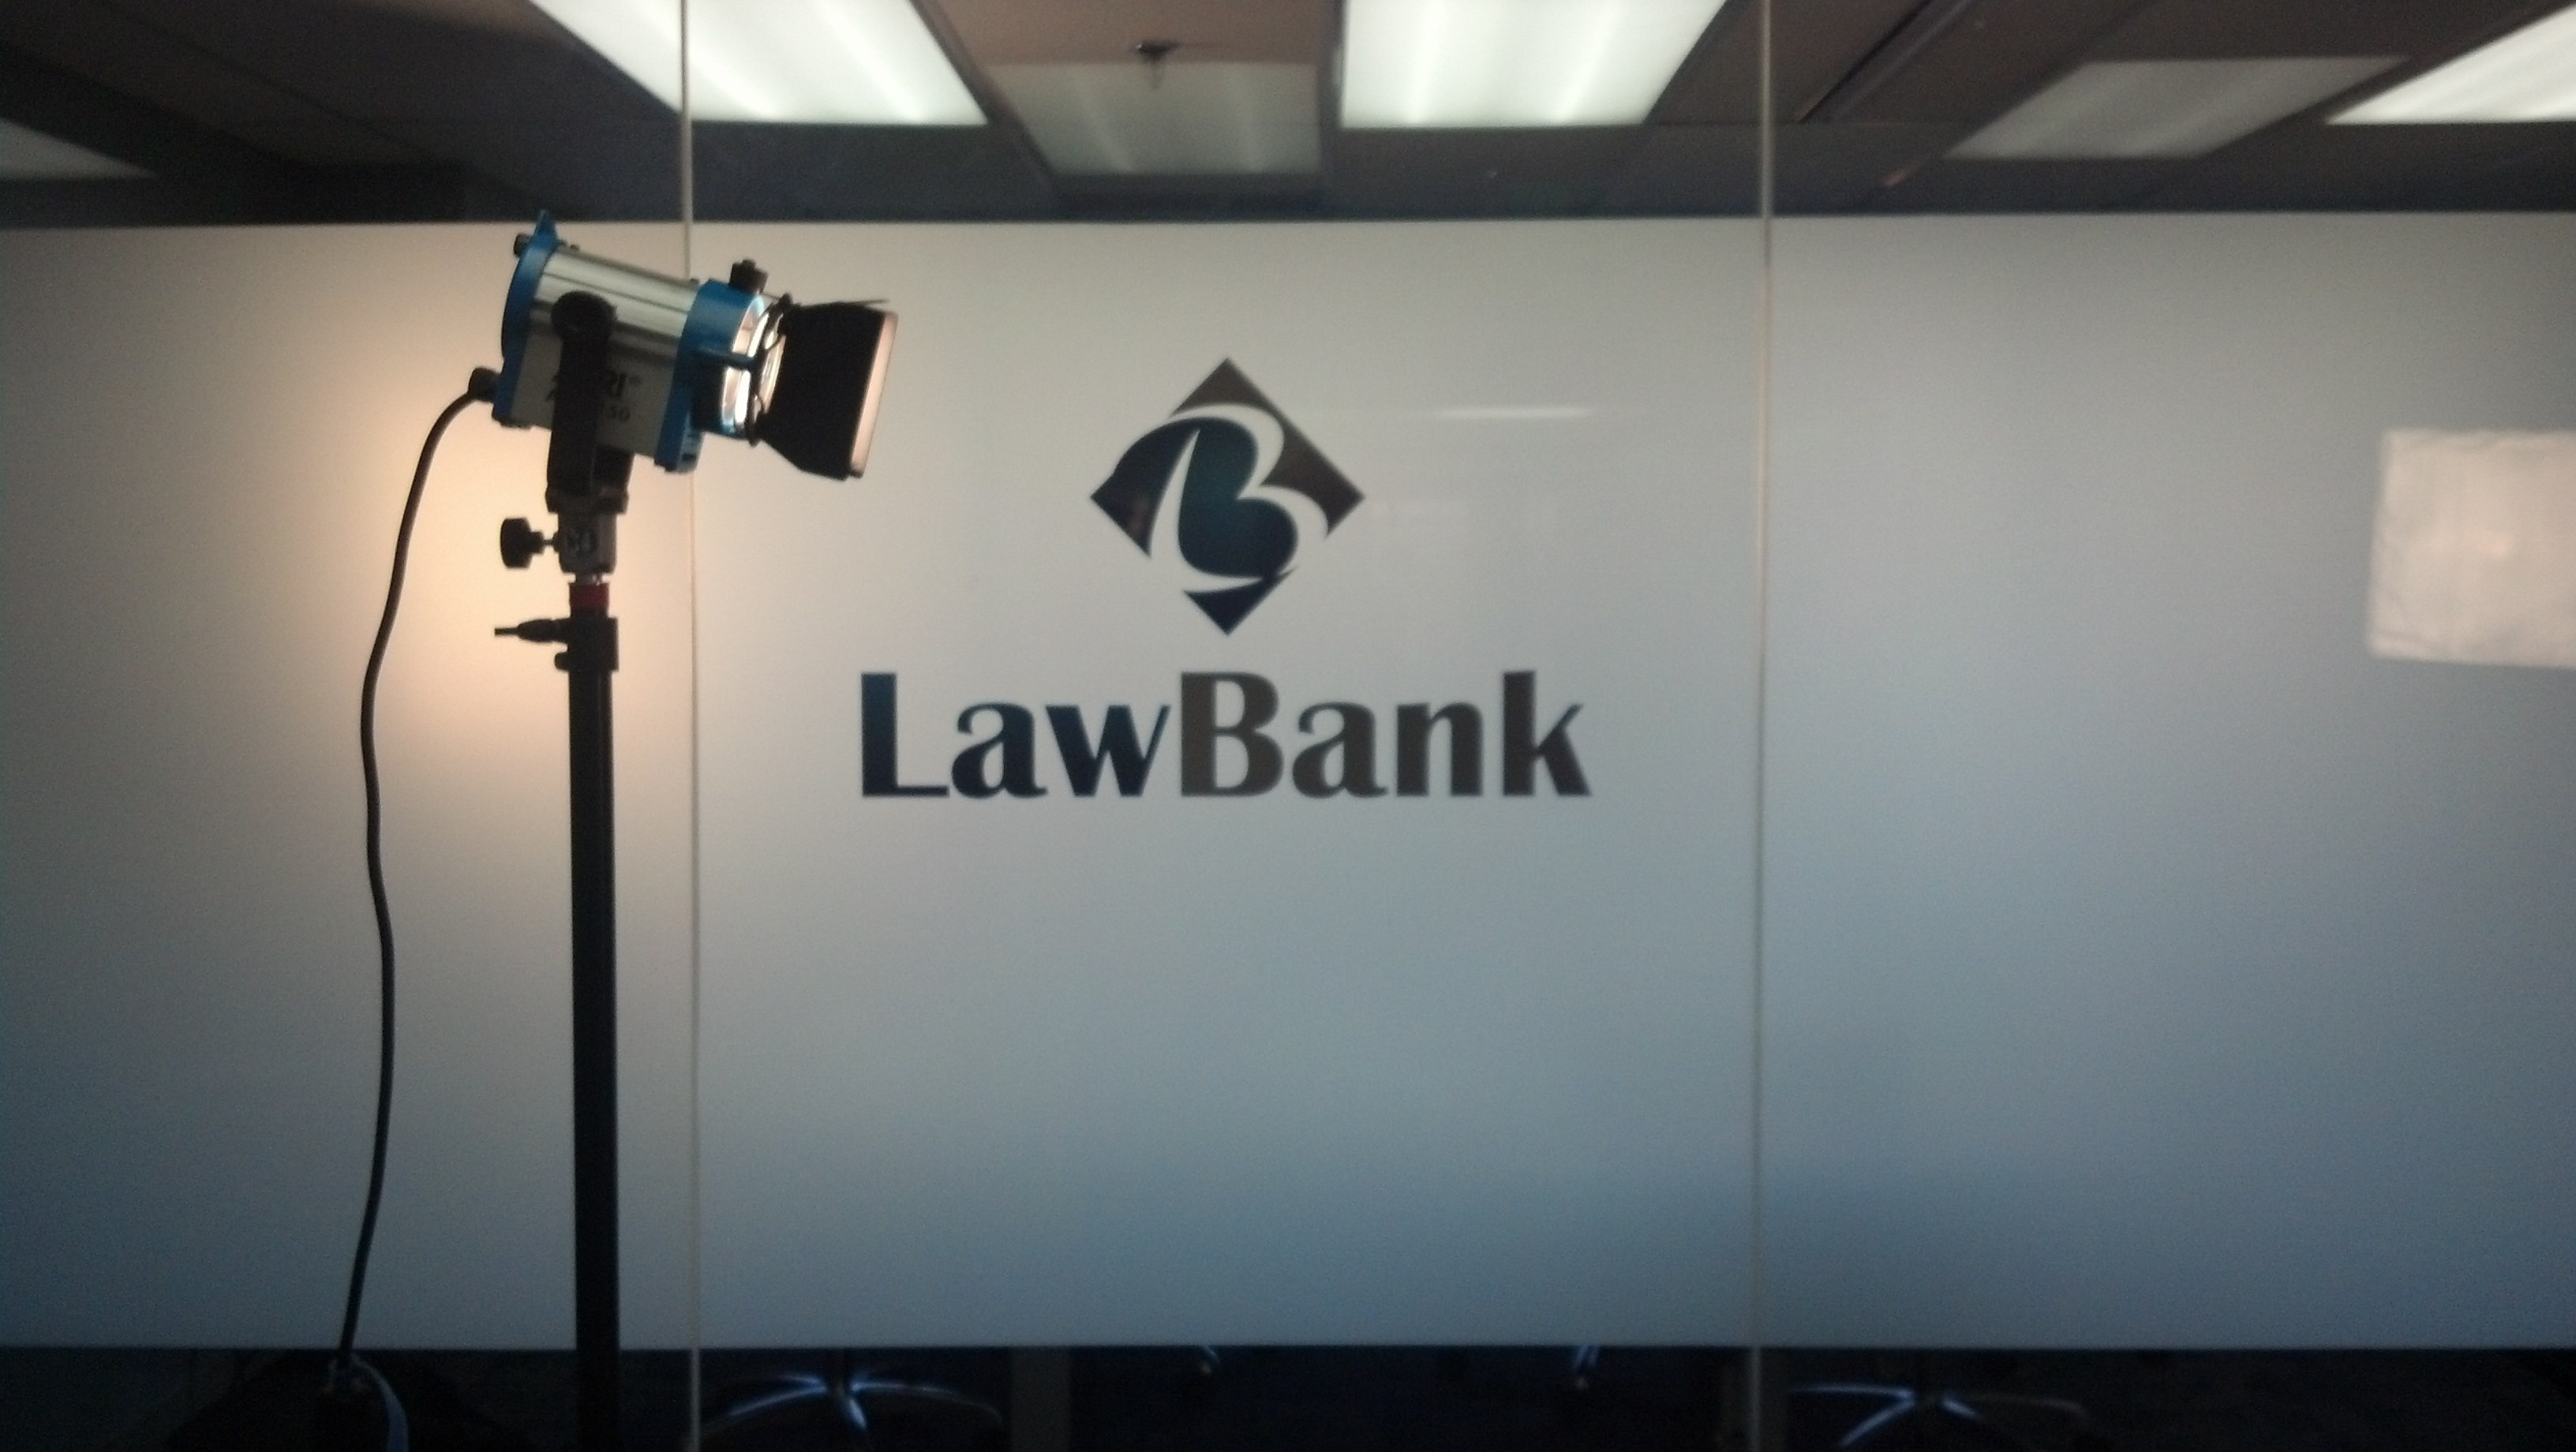 Tips for Lawyers: LawBank's New Video Series